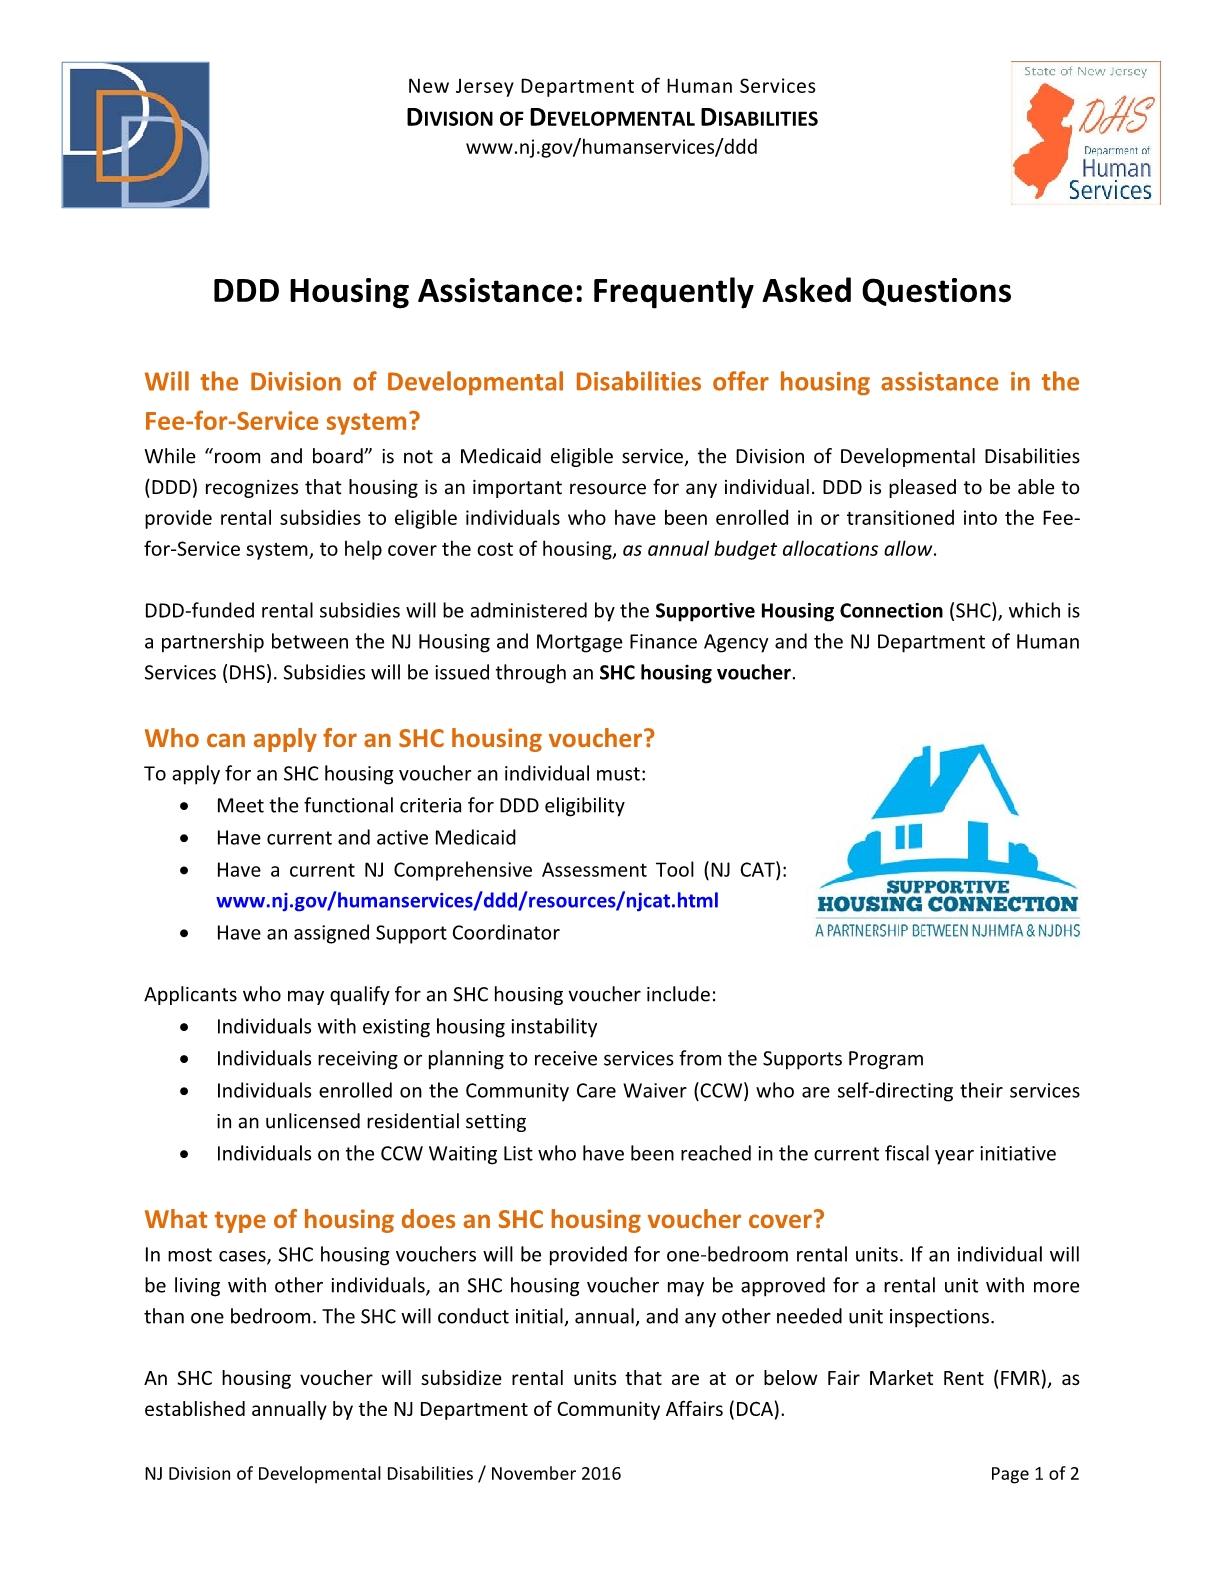 DDD Housing Assistance: Frequently Asked Questions